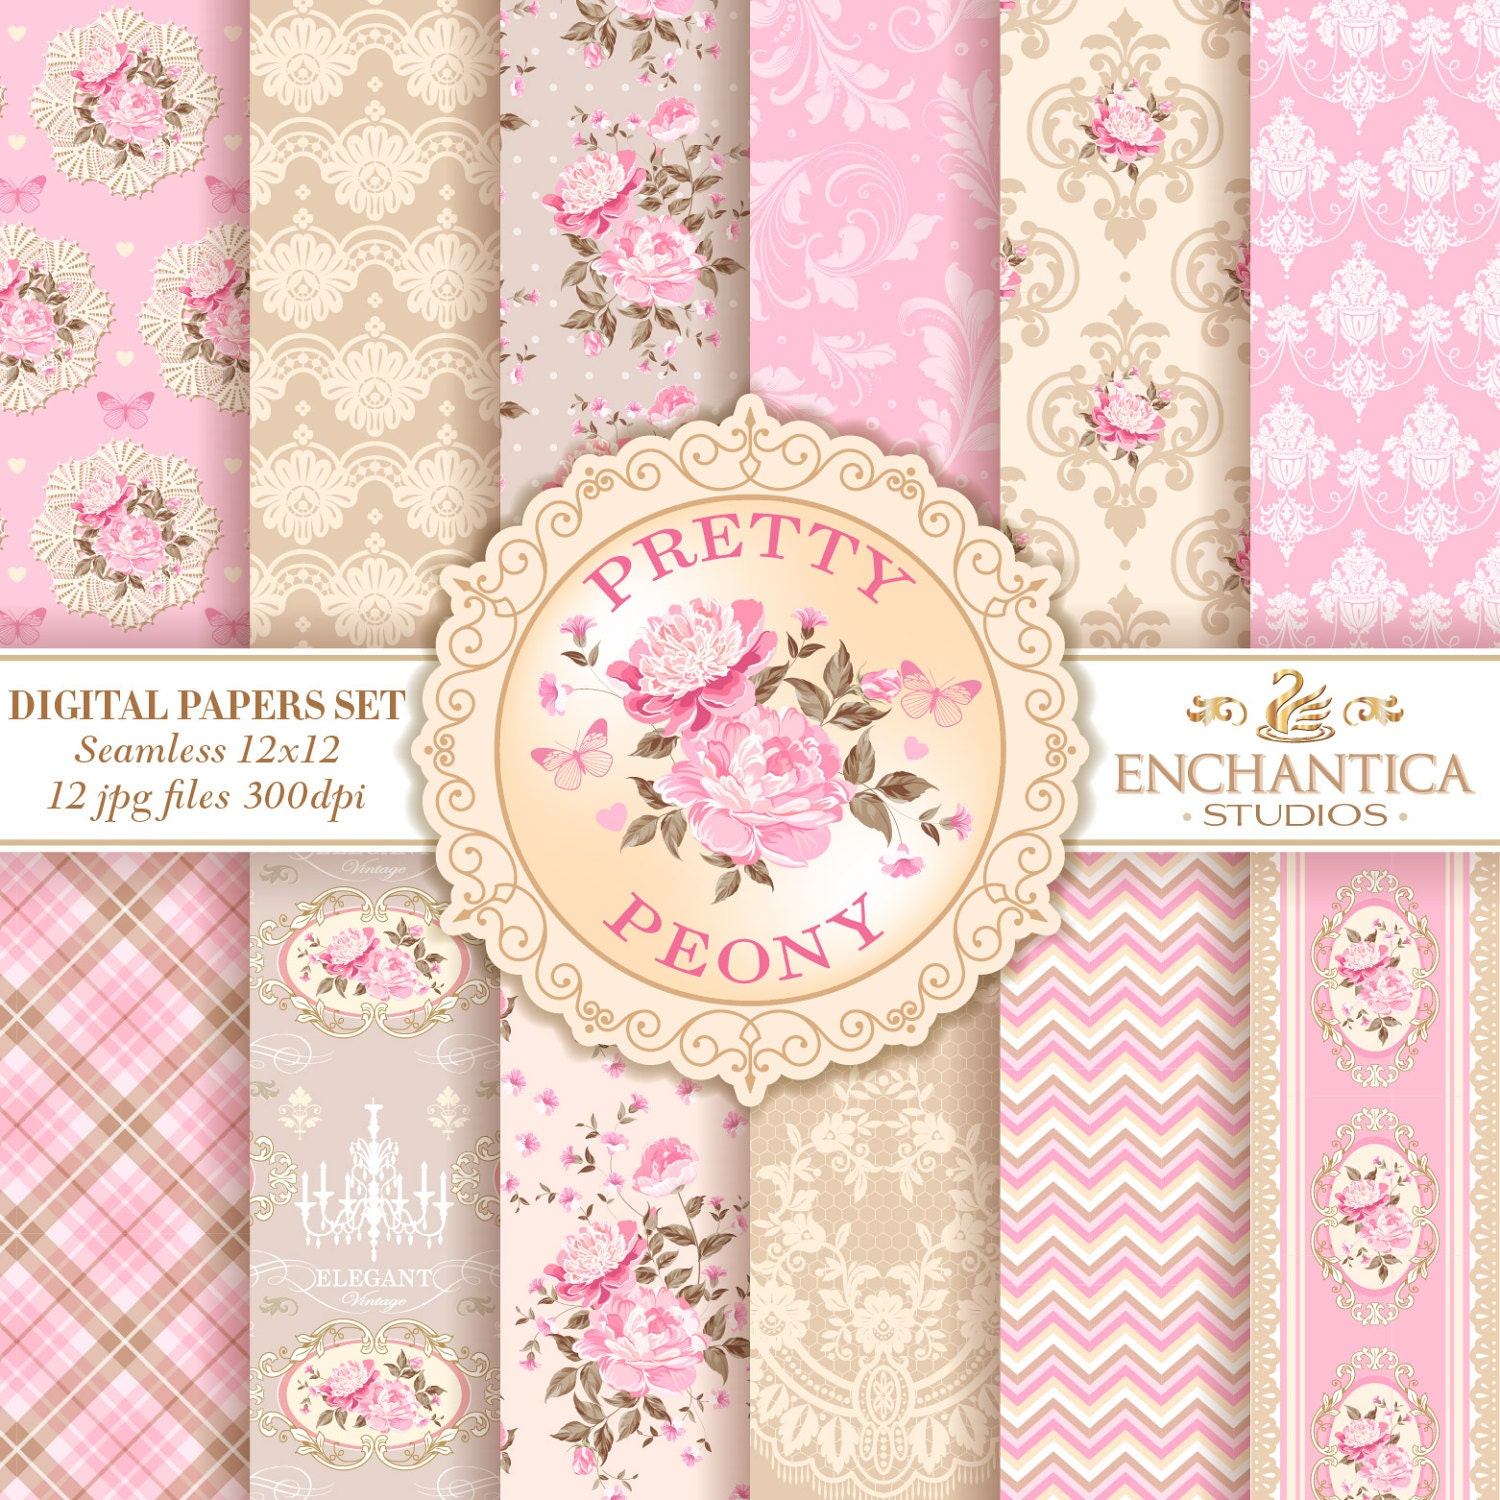 Digital Paper Shabby Chic Shabby Chic Paper Vintage Floral ...